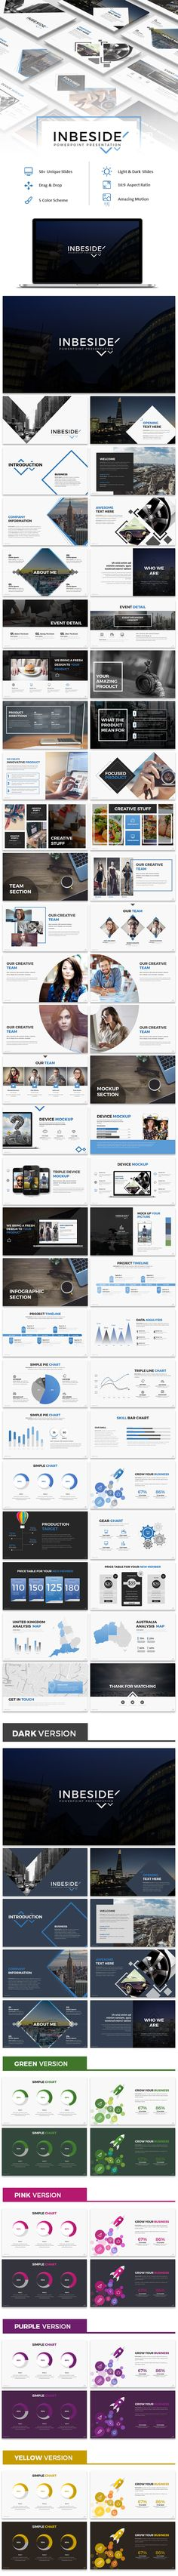 Inbeside Powerpoint Template #powerpoint #presentation Download https://graphicriver.net/item/inbeside-powerpoint-template/19224921?s_rank=4?ref=BrandEarth